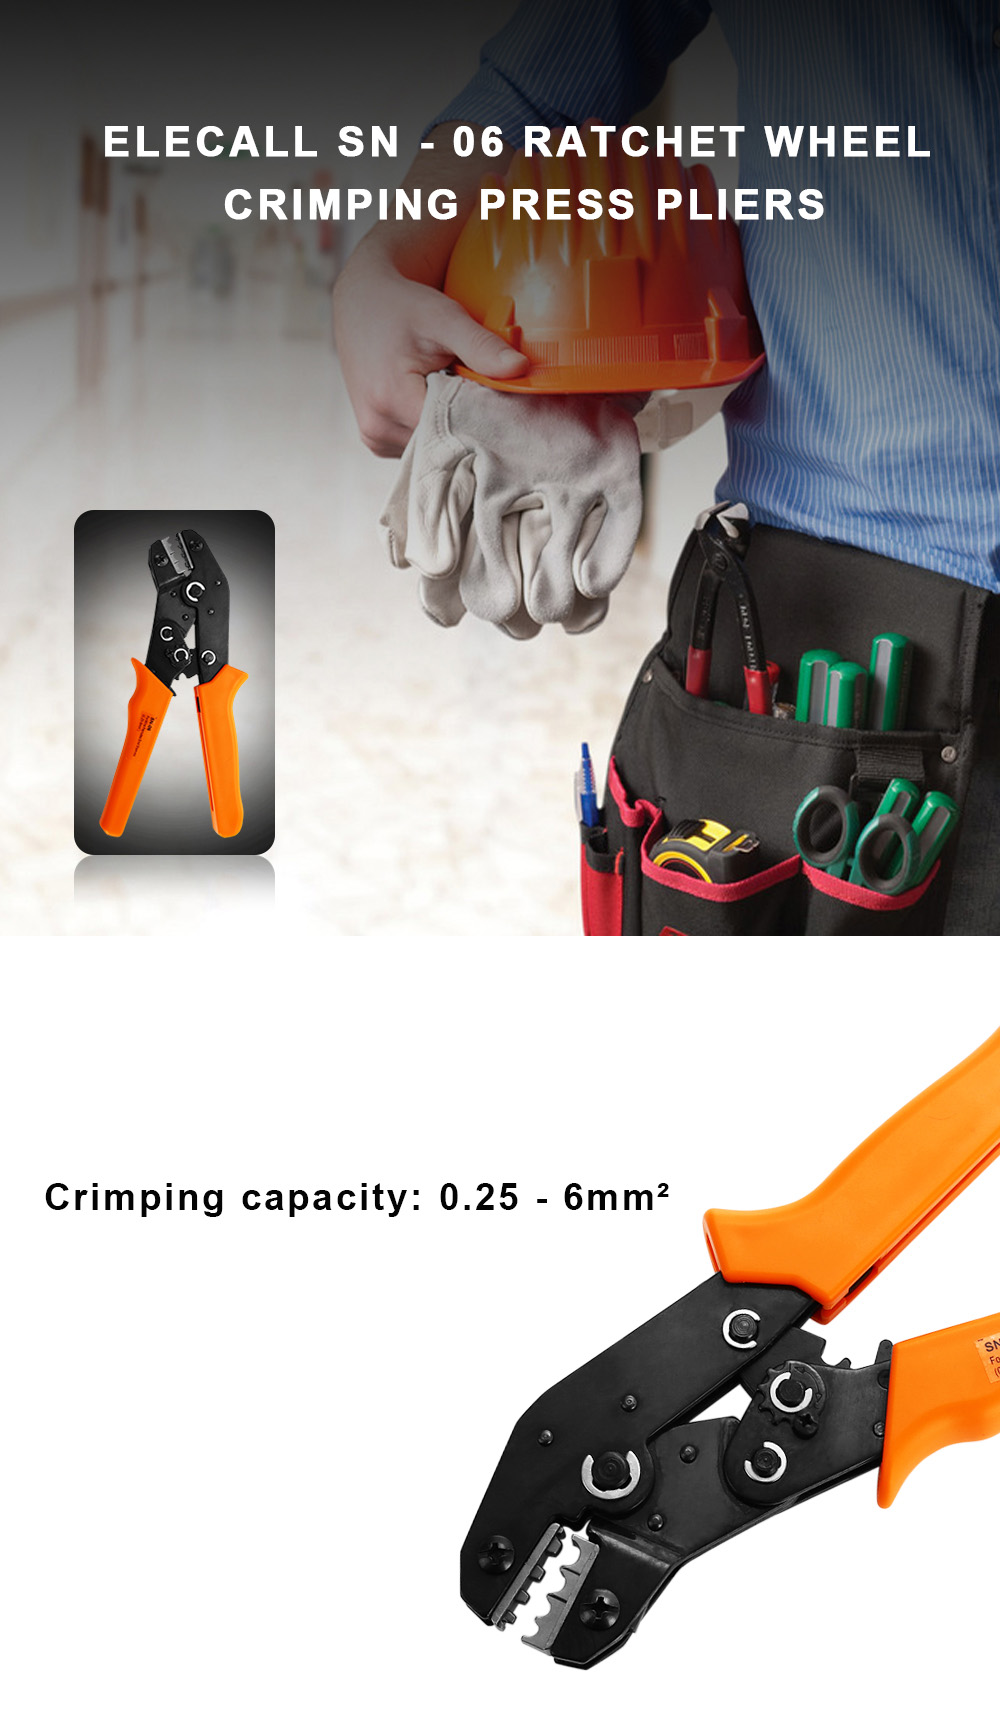 ELECALL SN - 06 Ratchet Wheel Save Effort Crimping Press Pliers